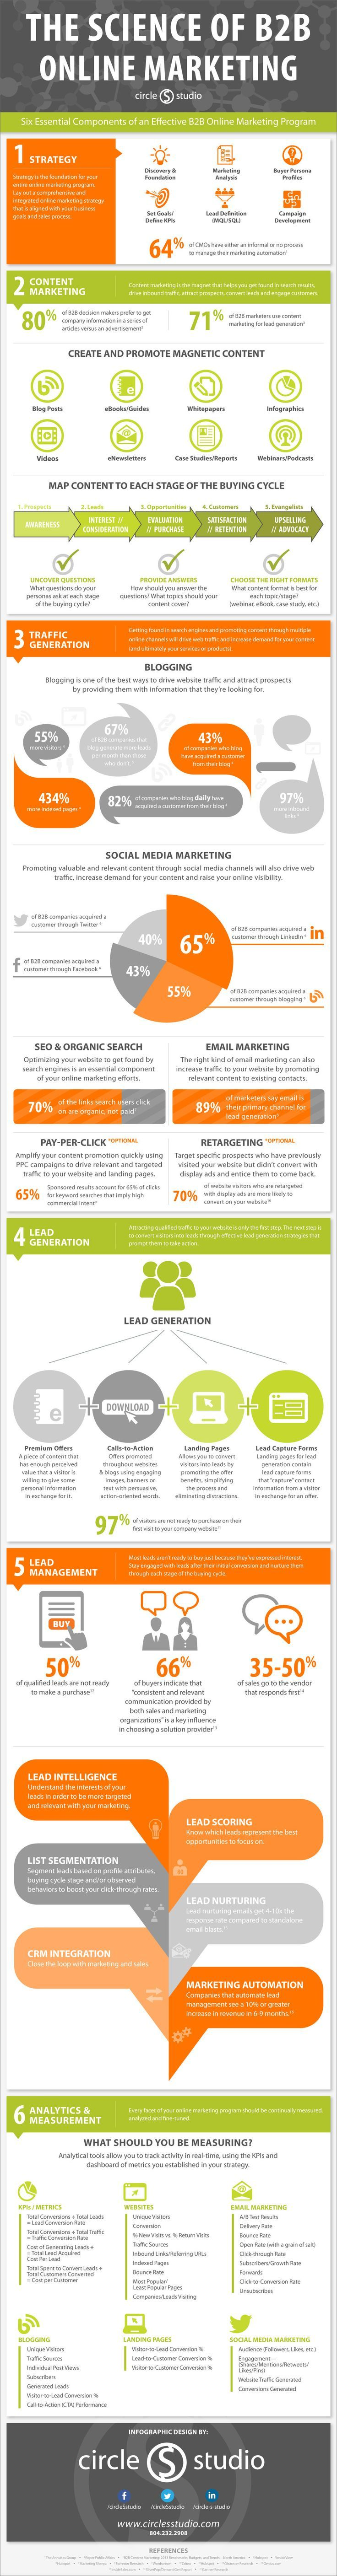 The Science of B2B Online Marketing - 6 Essential Component Of An Effective B2B Online Marketing Plan www.socialmediamamma.com Infographic